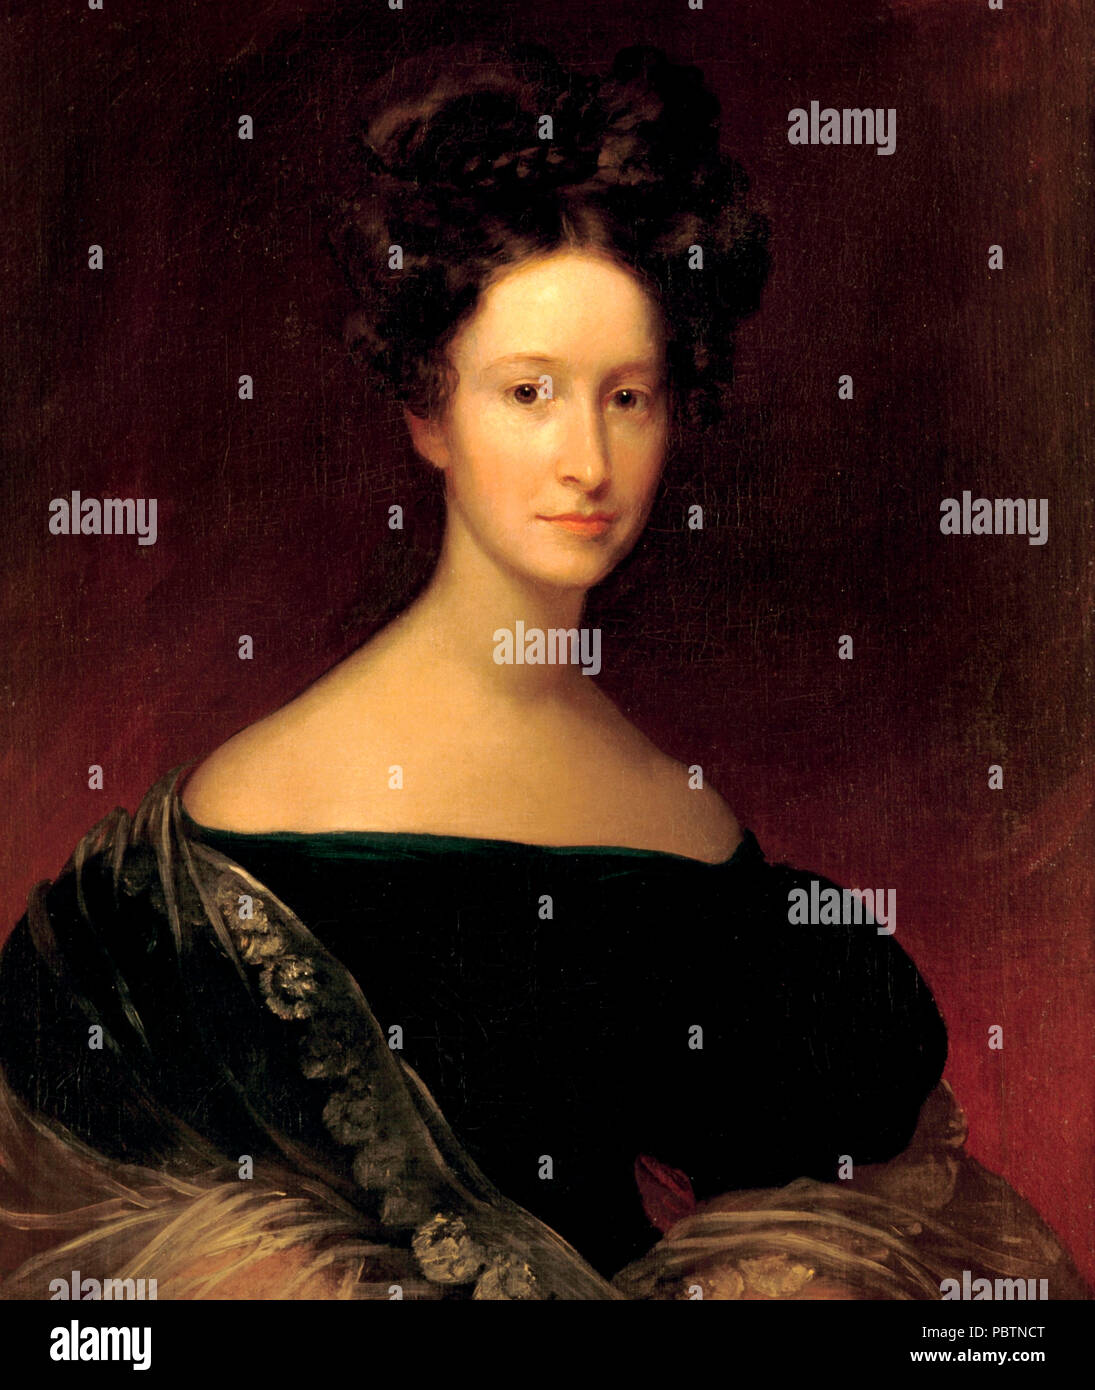 Emily Donelson, niece of US President Andrew Jackson and unofficial hostess of the White House. - Stock Image